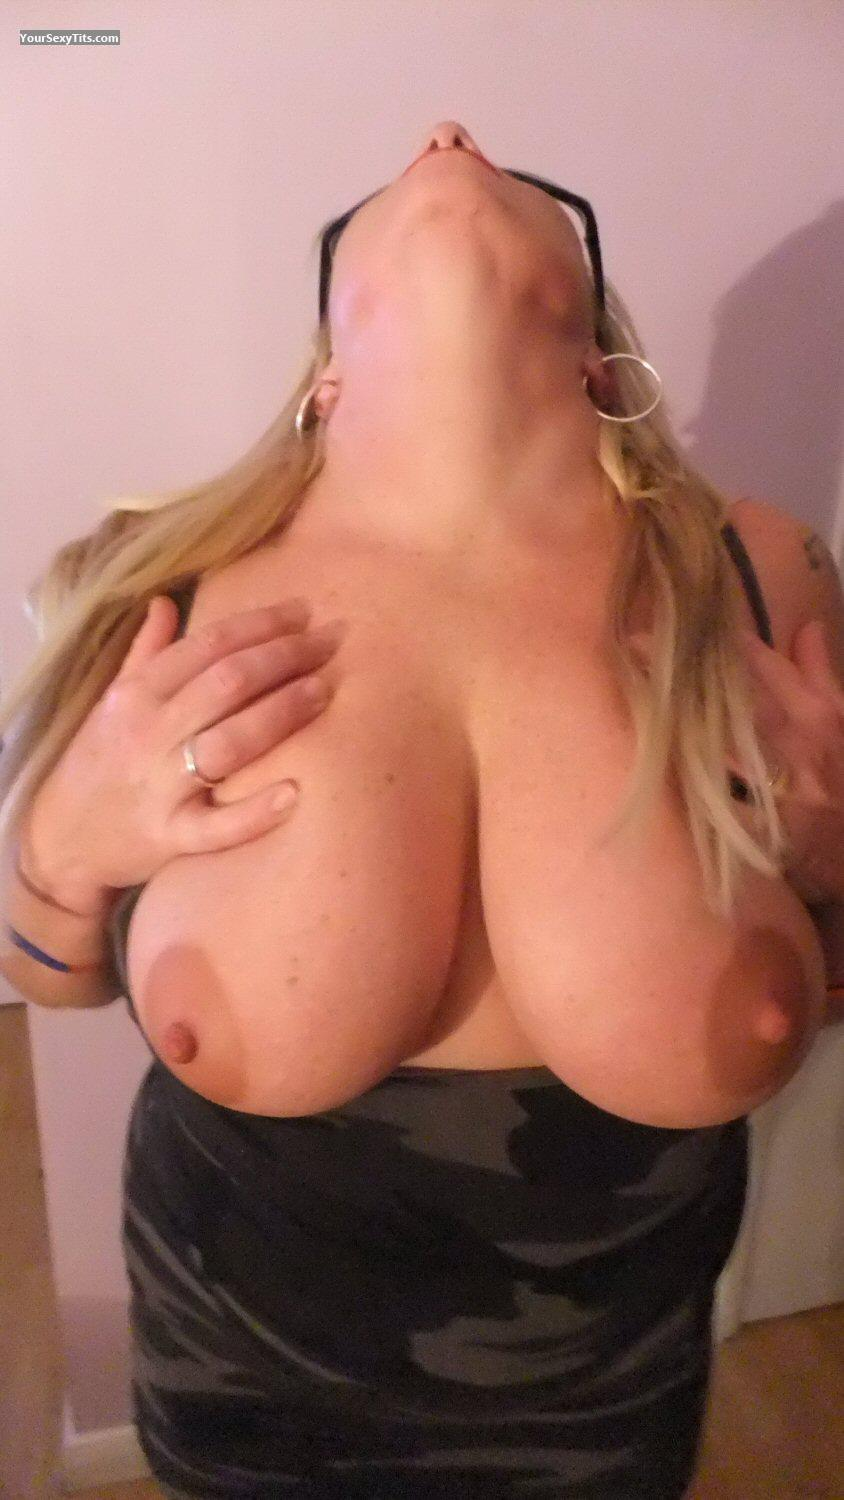 Tit Flash: Girlfriend's Very Big Tits - H from United Kingdom